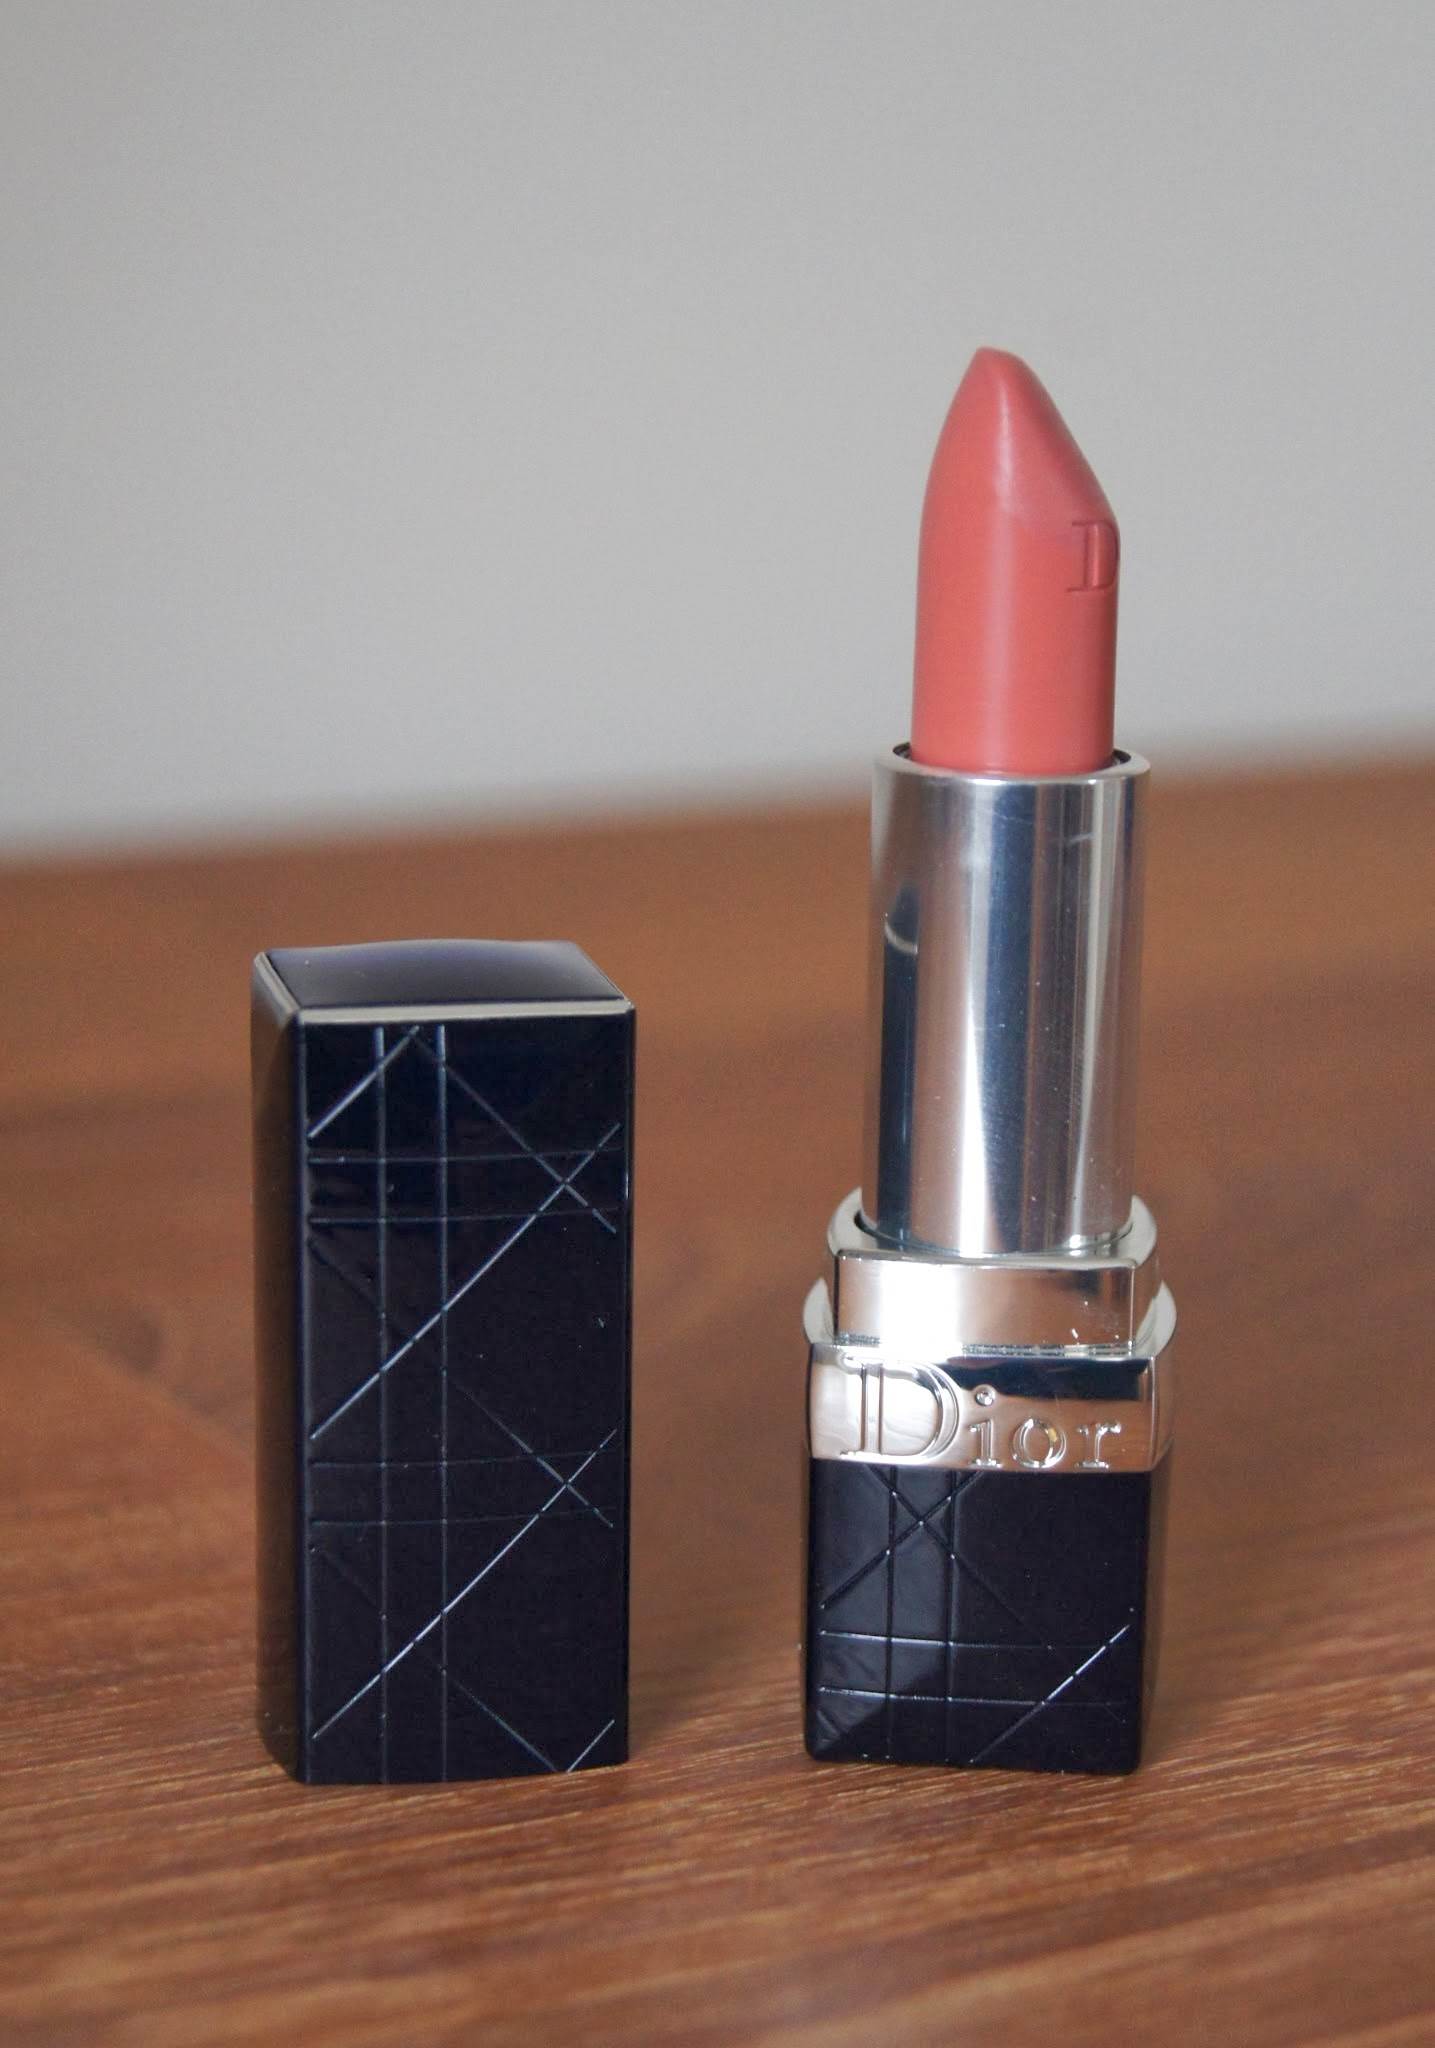 Dior Rouge Dior Lipstick Review 169 Grege Swatch